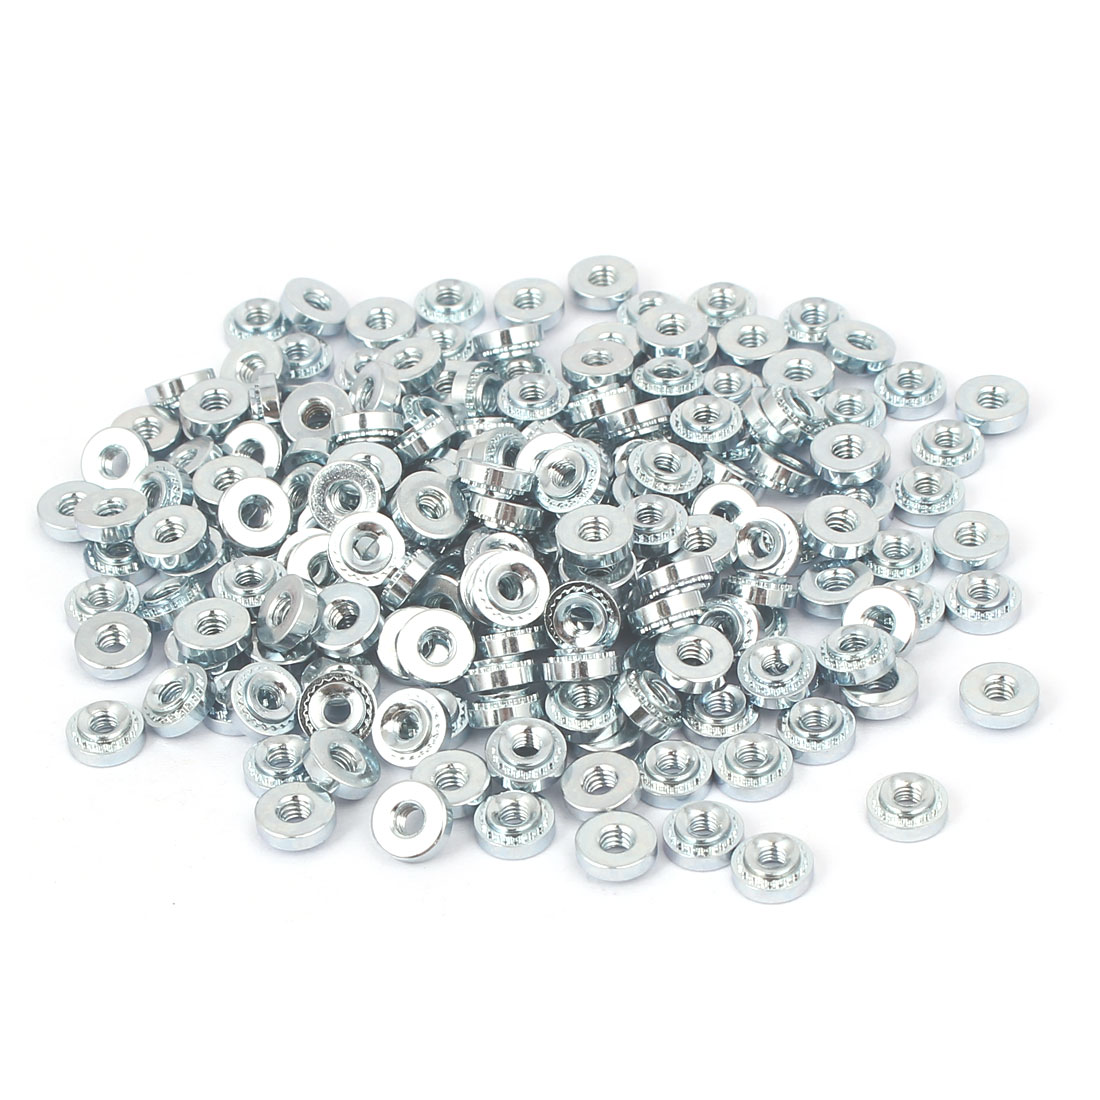 S-M2.5-1 Carbon Steel Self Clinching Rivet Nut Fastener 200pcs for 1.0mm Thin Plates